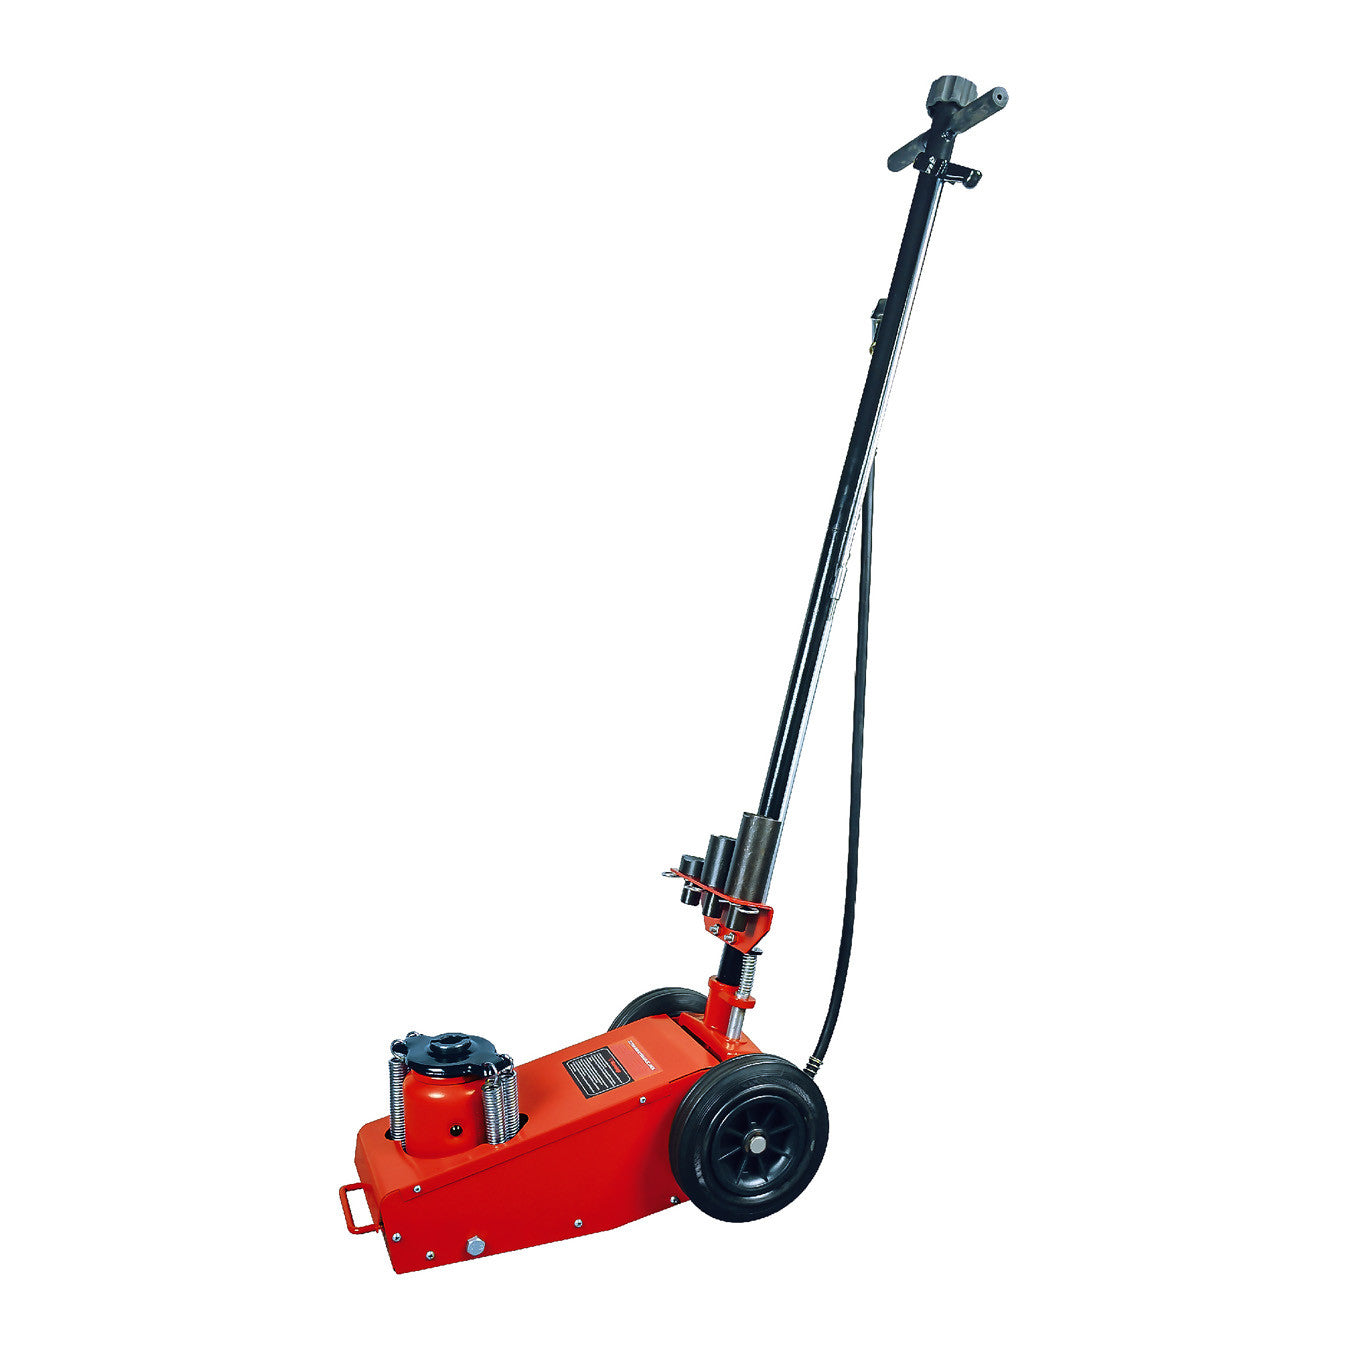 20 Ton Air Hydraulic GARAGE FLOOR JACK - 0247T-0 - King ...